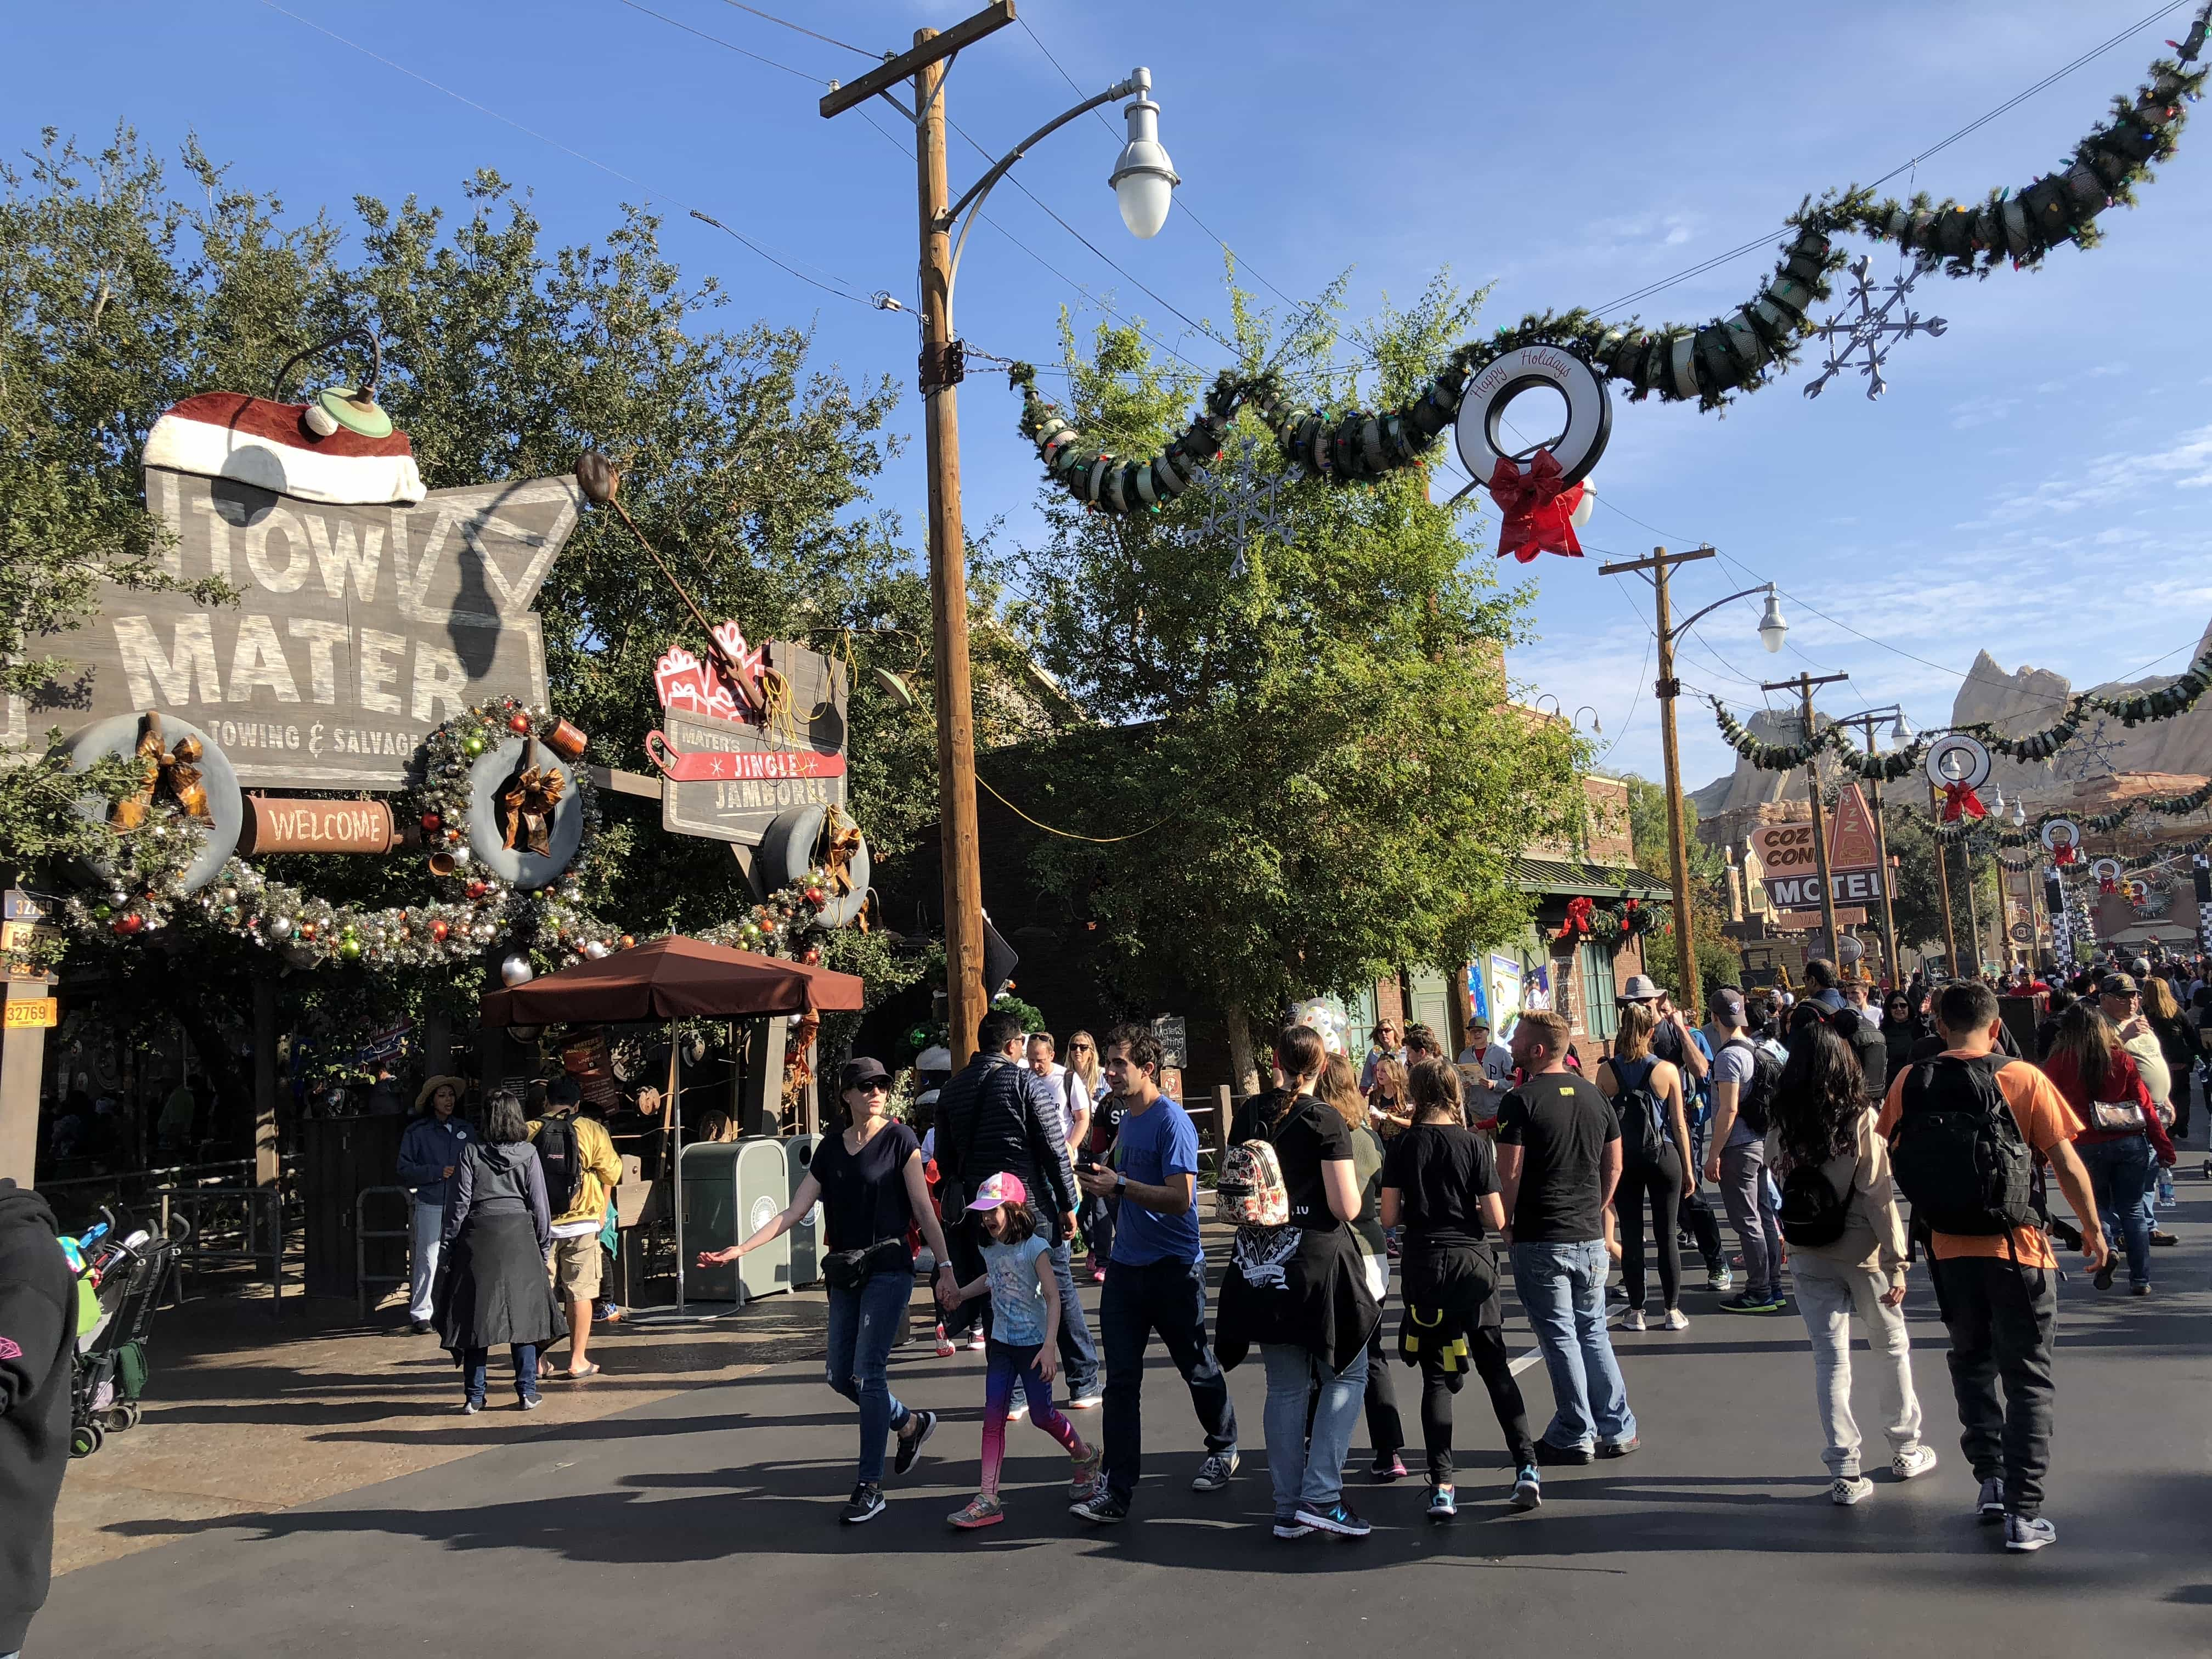 Crowds get larger and larger as the day progresses at Disney California Adventure on New Year's Eve